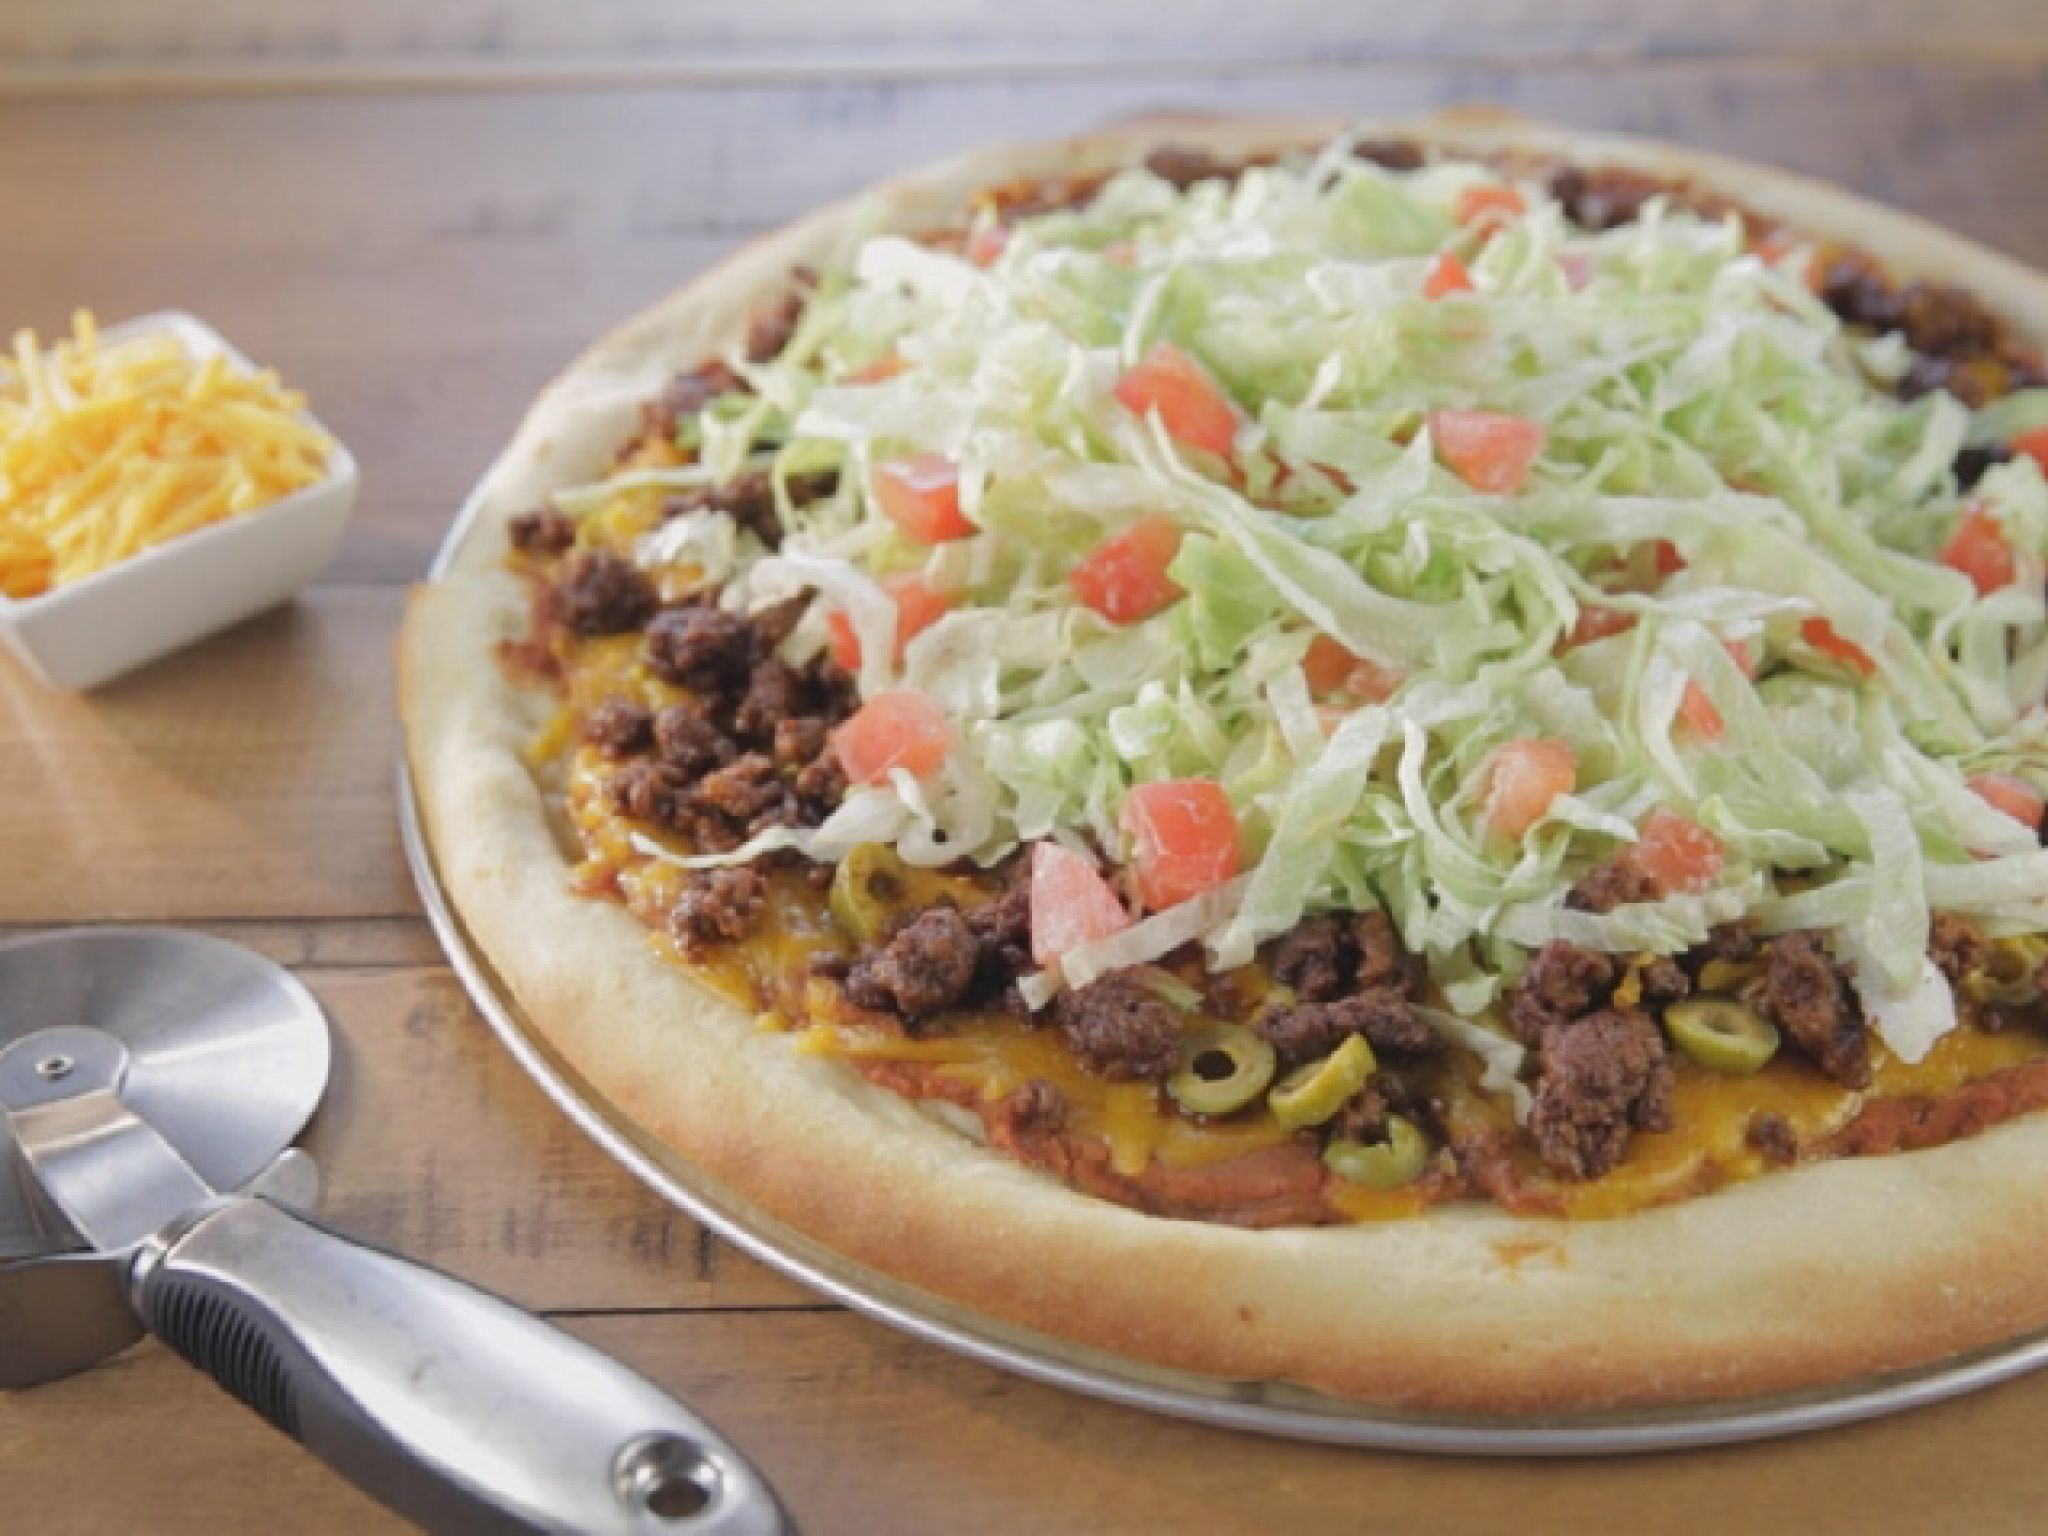 Garths taco pizza recipe from trisha yearwood via food network garths taco pizza recipe from trisha yearwood via food network forumfinder Gallery